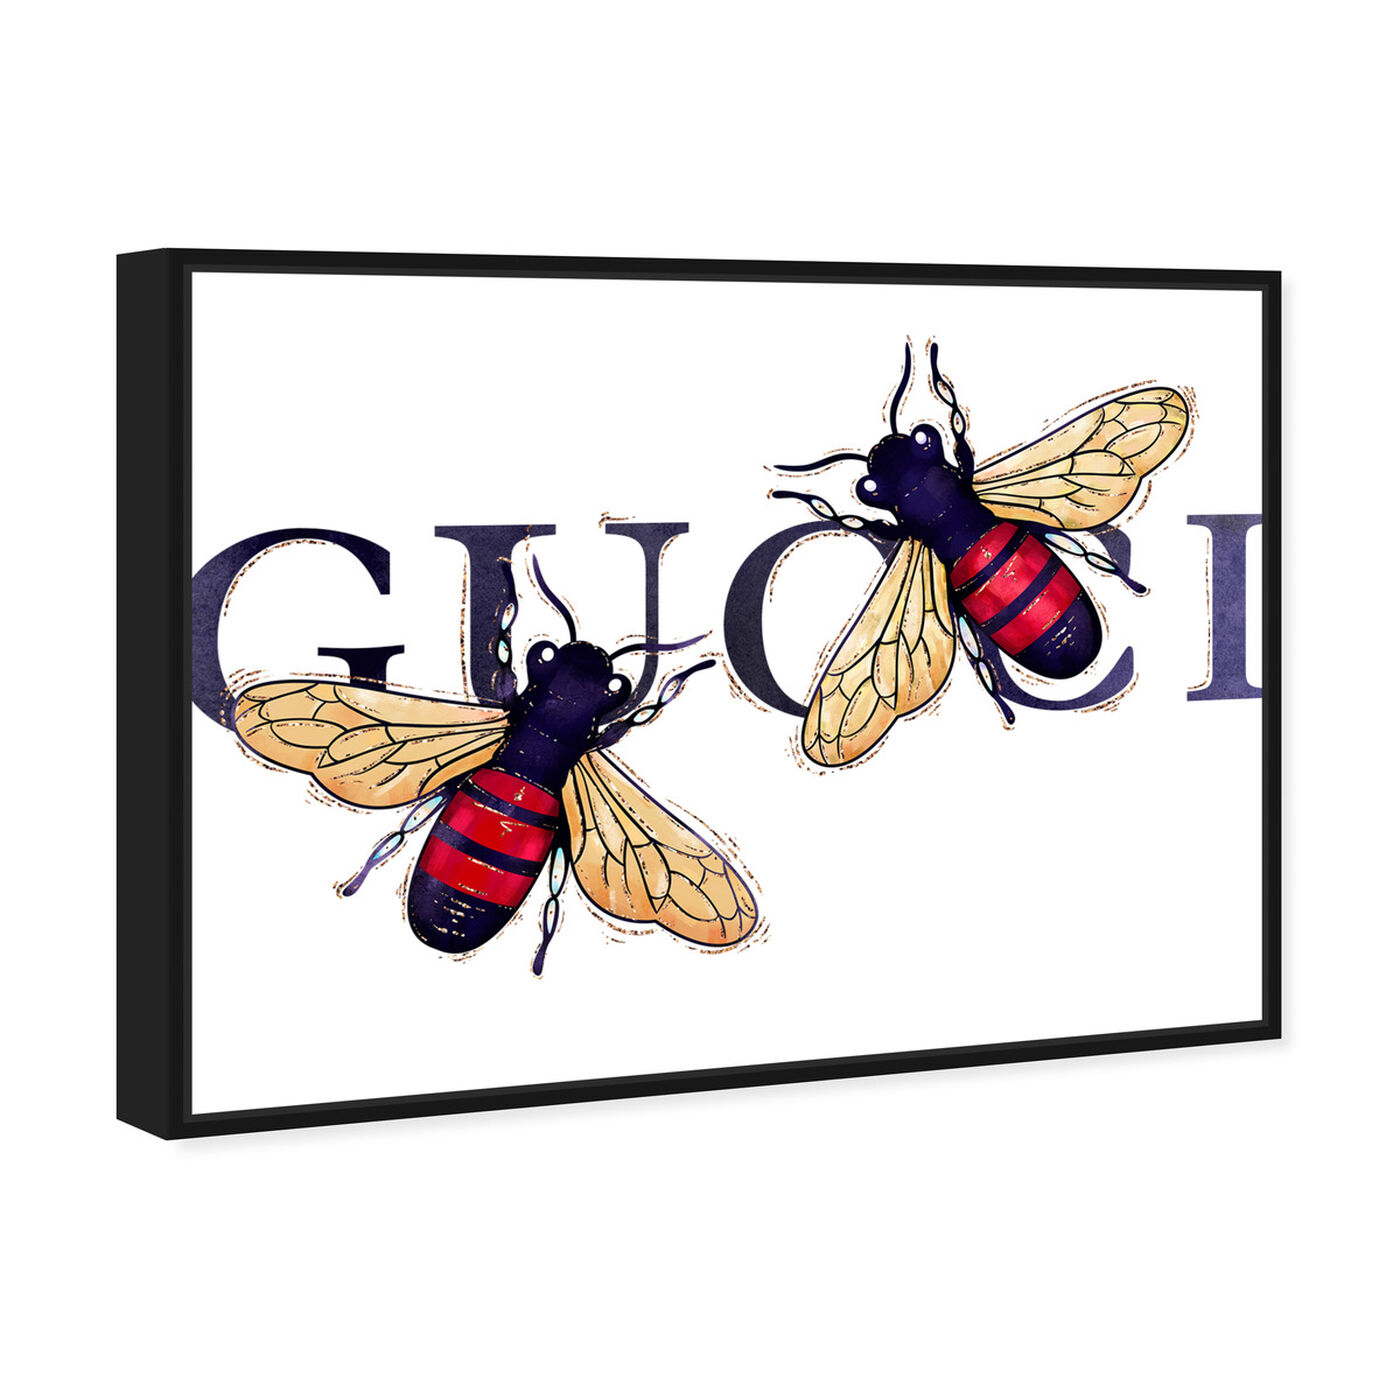 Angled view of Stylish Bumble Bee Patch featuring fashion and glam and fashion art.